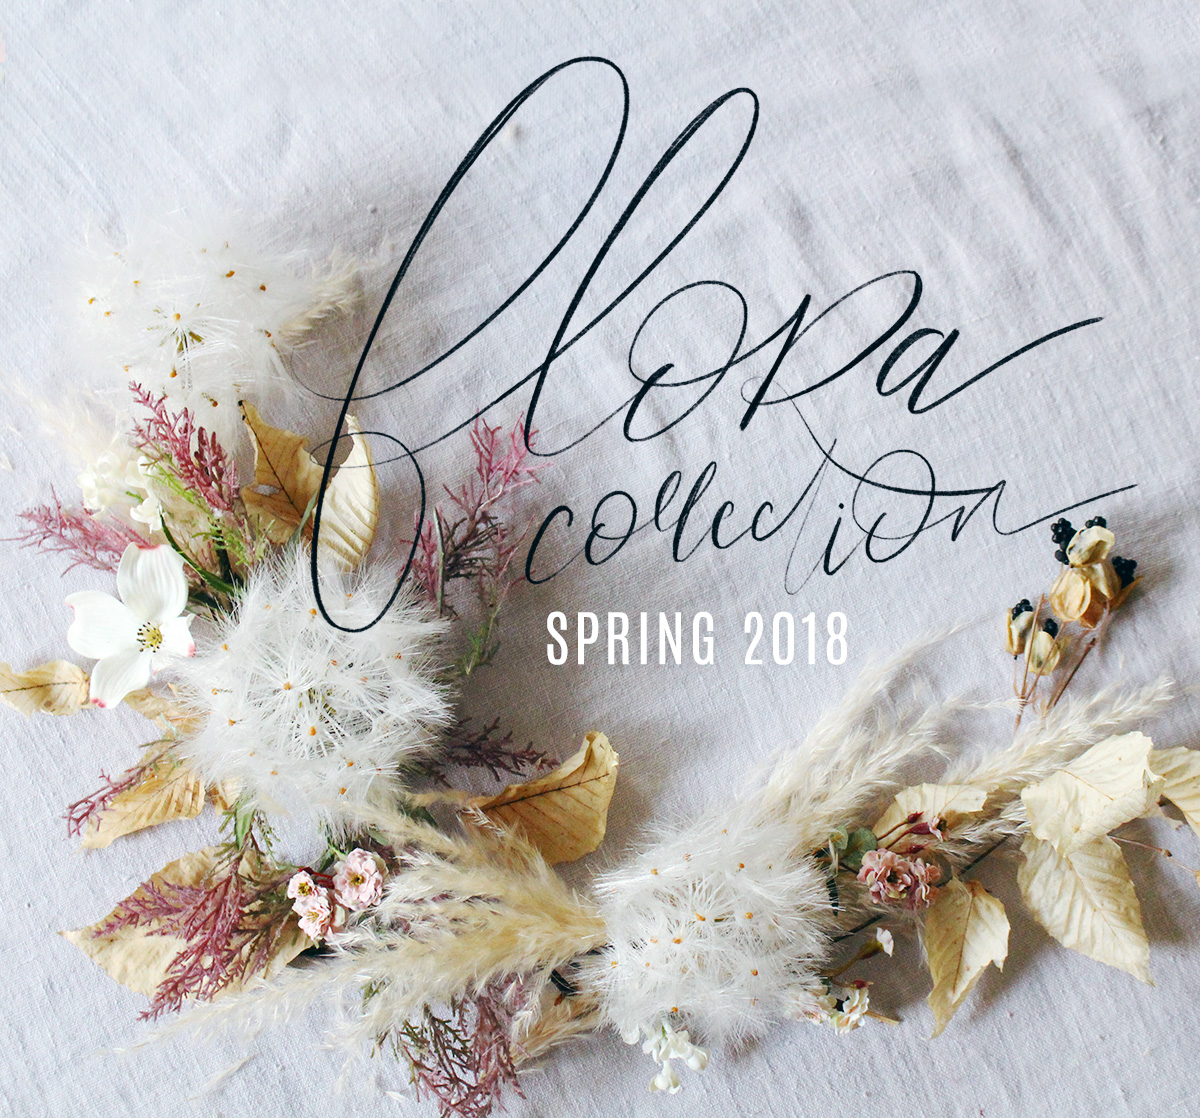 Lily & Val Flora Collection Spring 2018